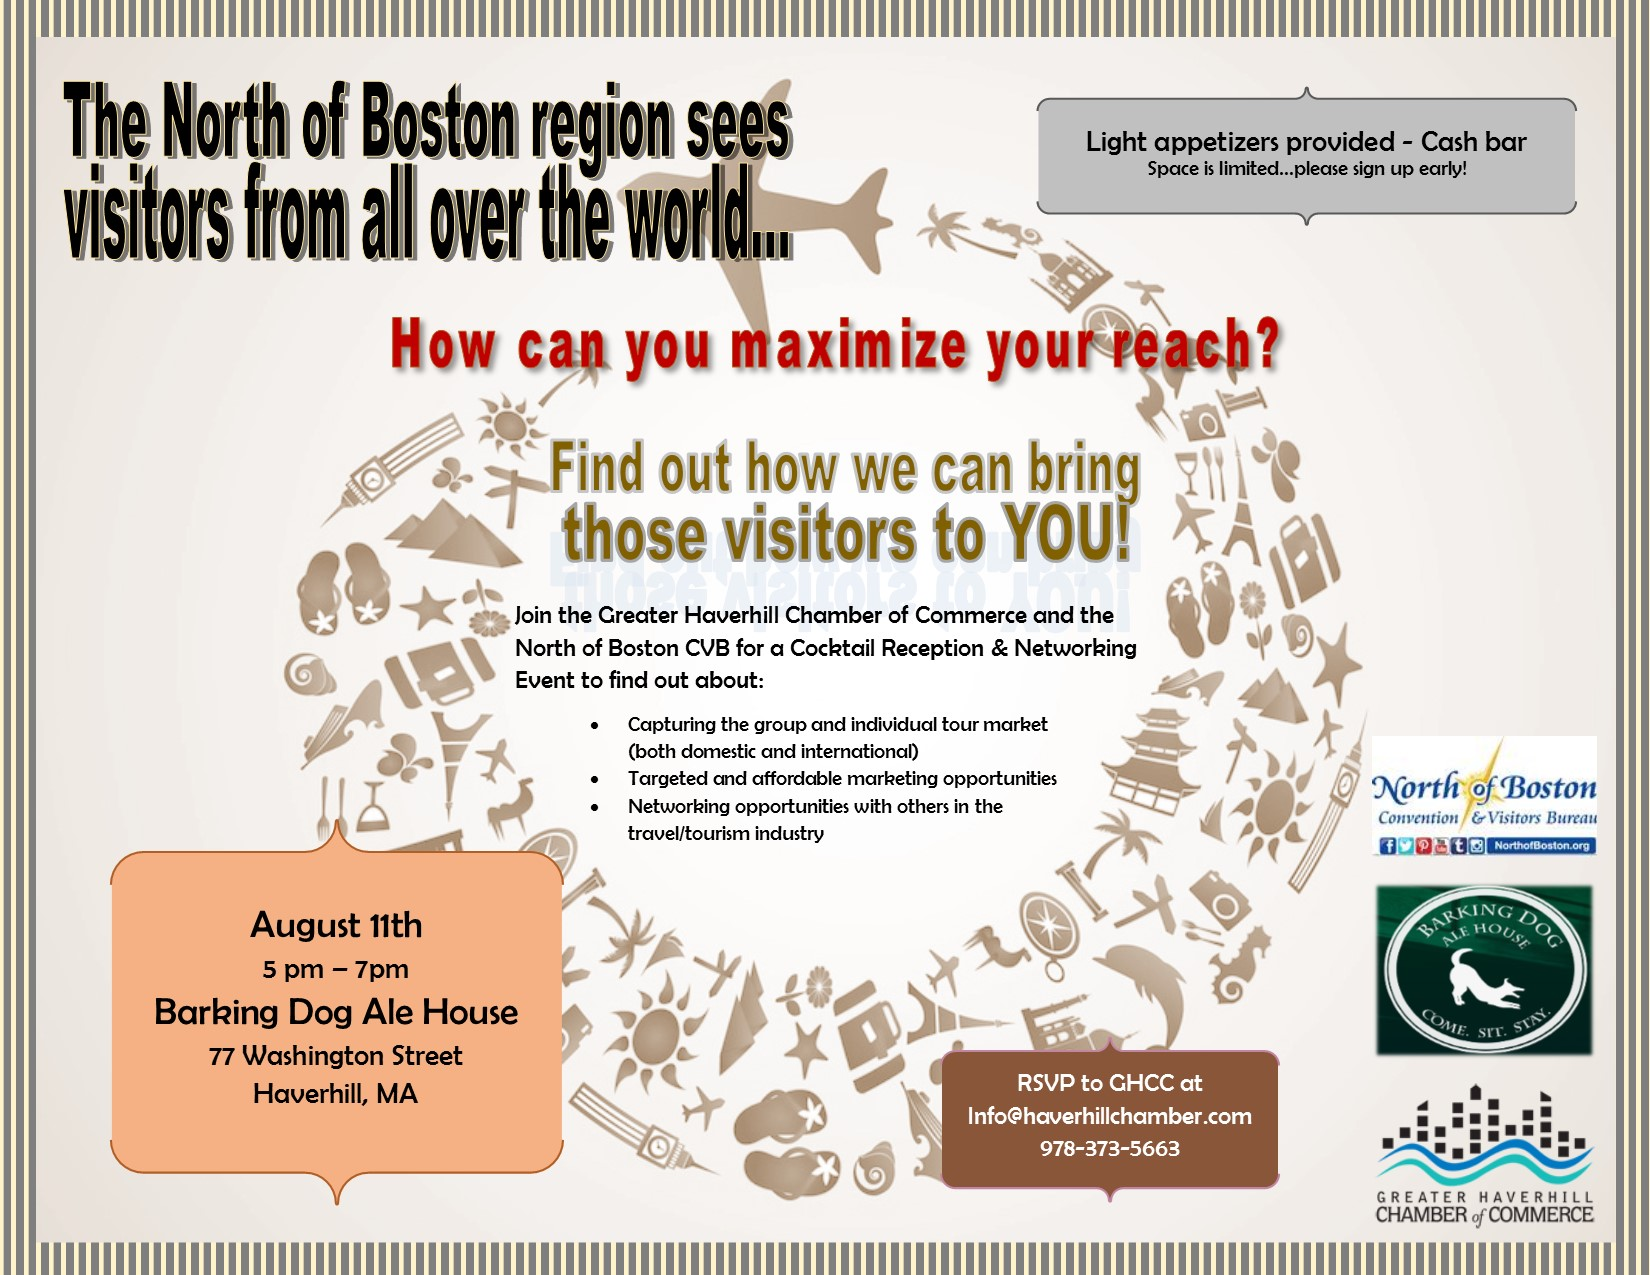 Chamber partners with North of Boston Convention & Visitor's Bureau to assist local businesses attract tourists to region